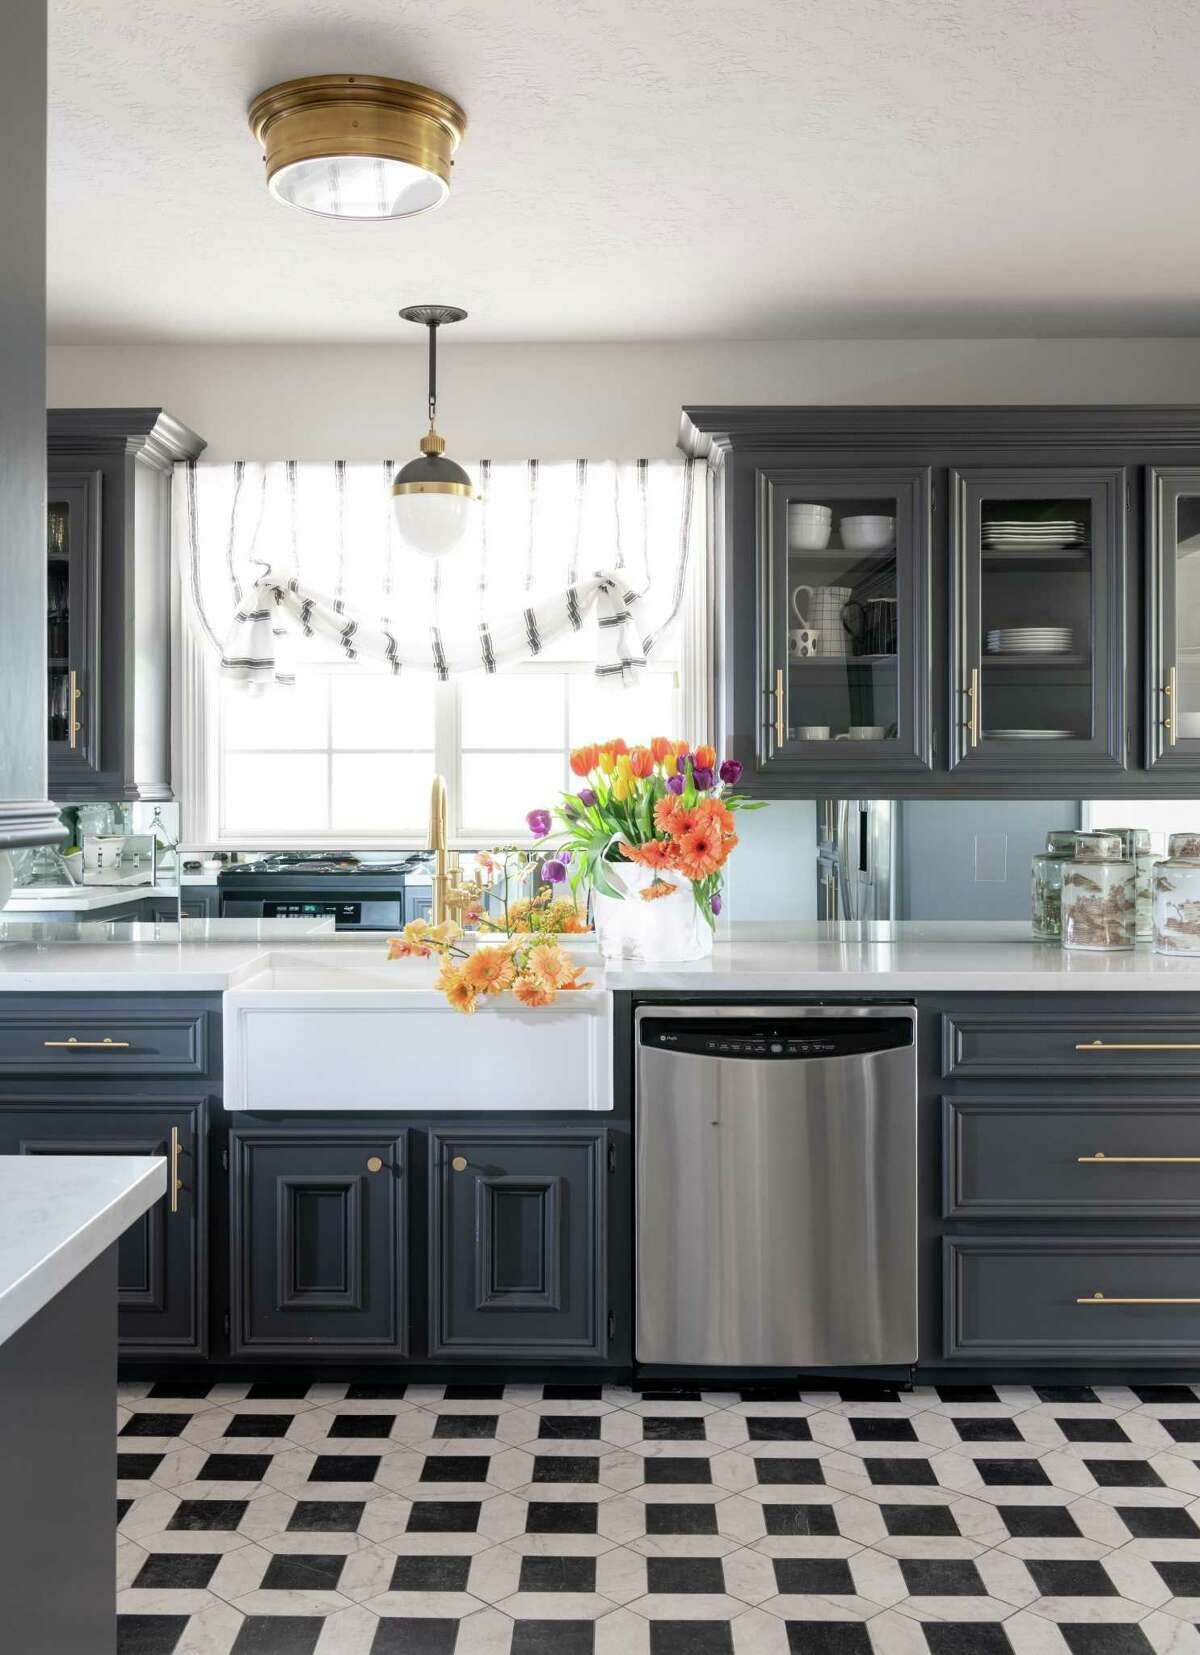 There are plenty of things you can do to spruce up small kitchens. Old cabinets can be painted, and new hardware added. You can also swap out wood panels for glass ones in cabinets where you want to show of pretty dishes or barware. (Room by Renea Abbott of Shabby Slips)